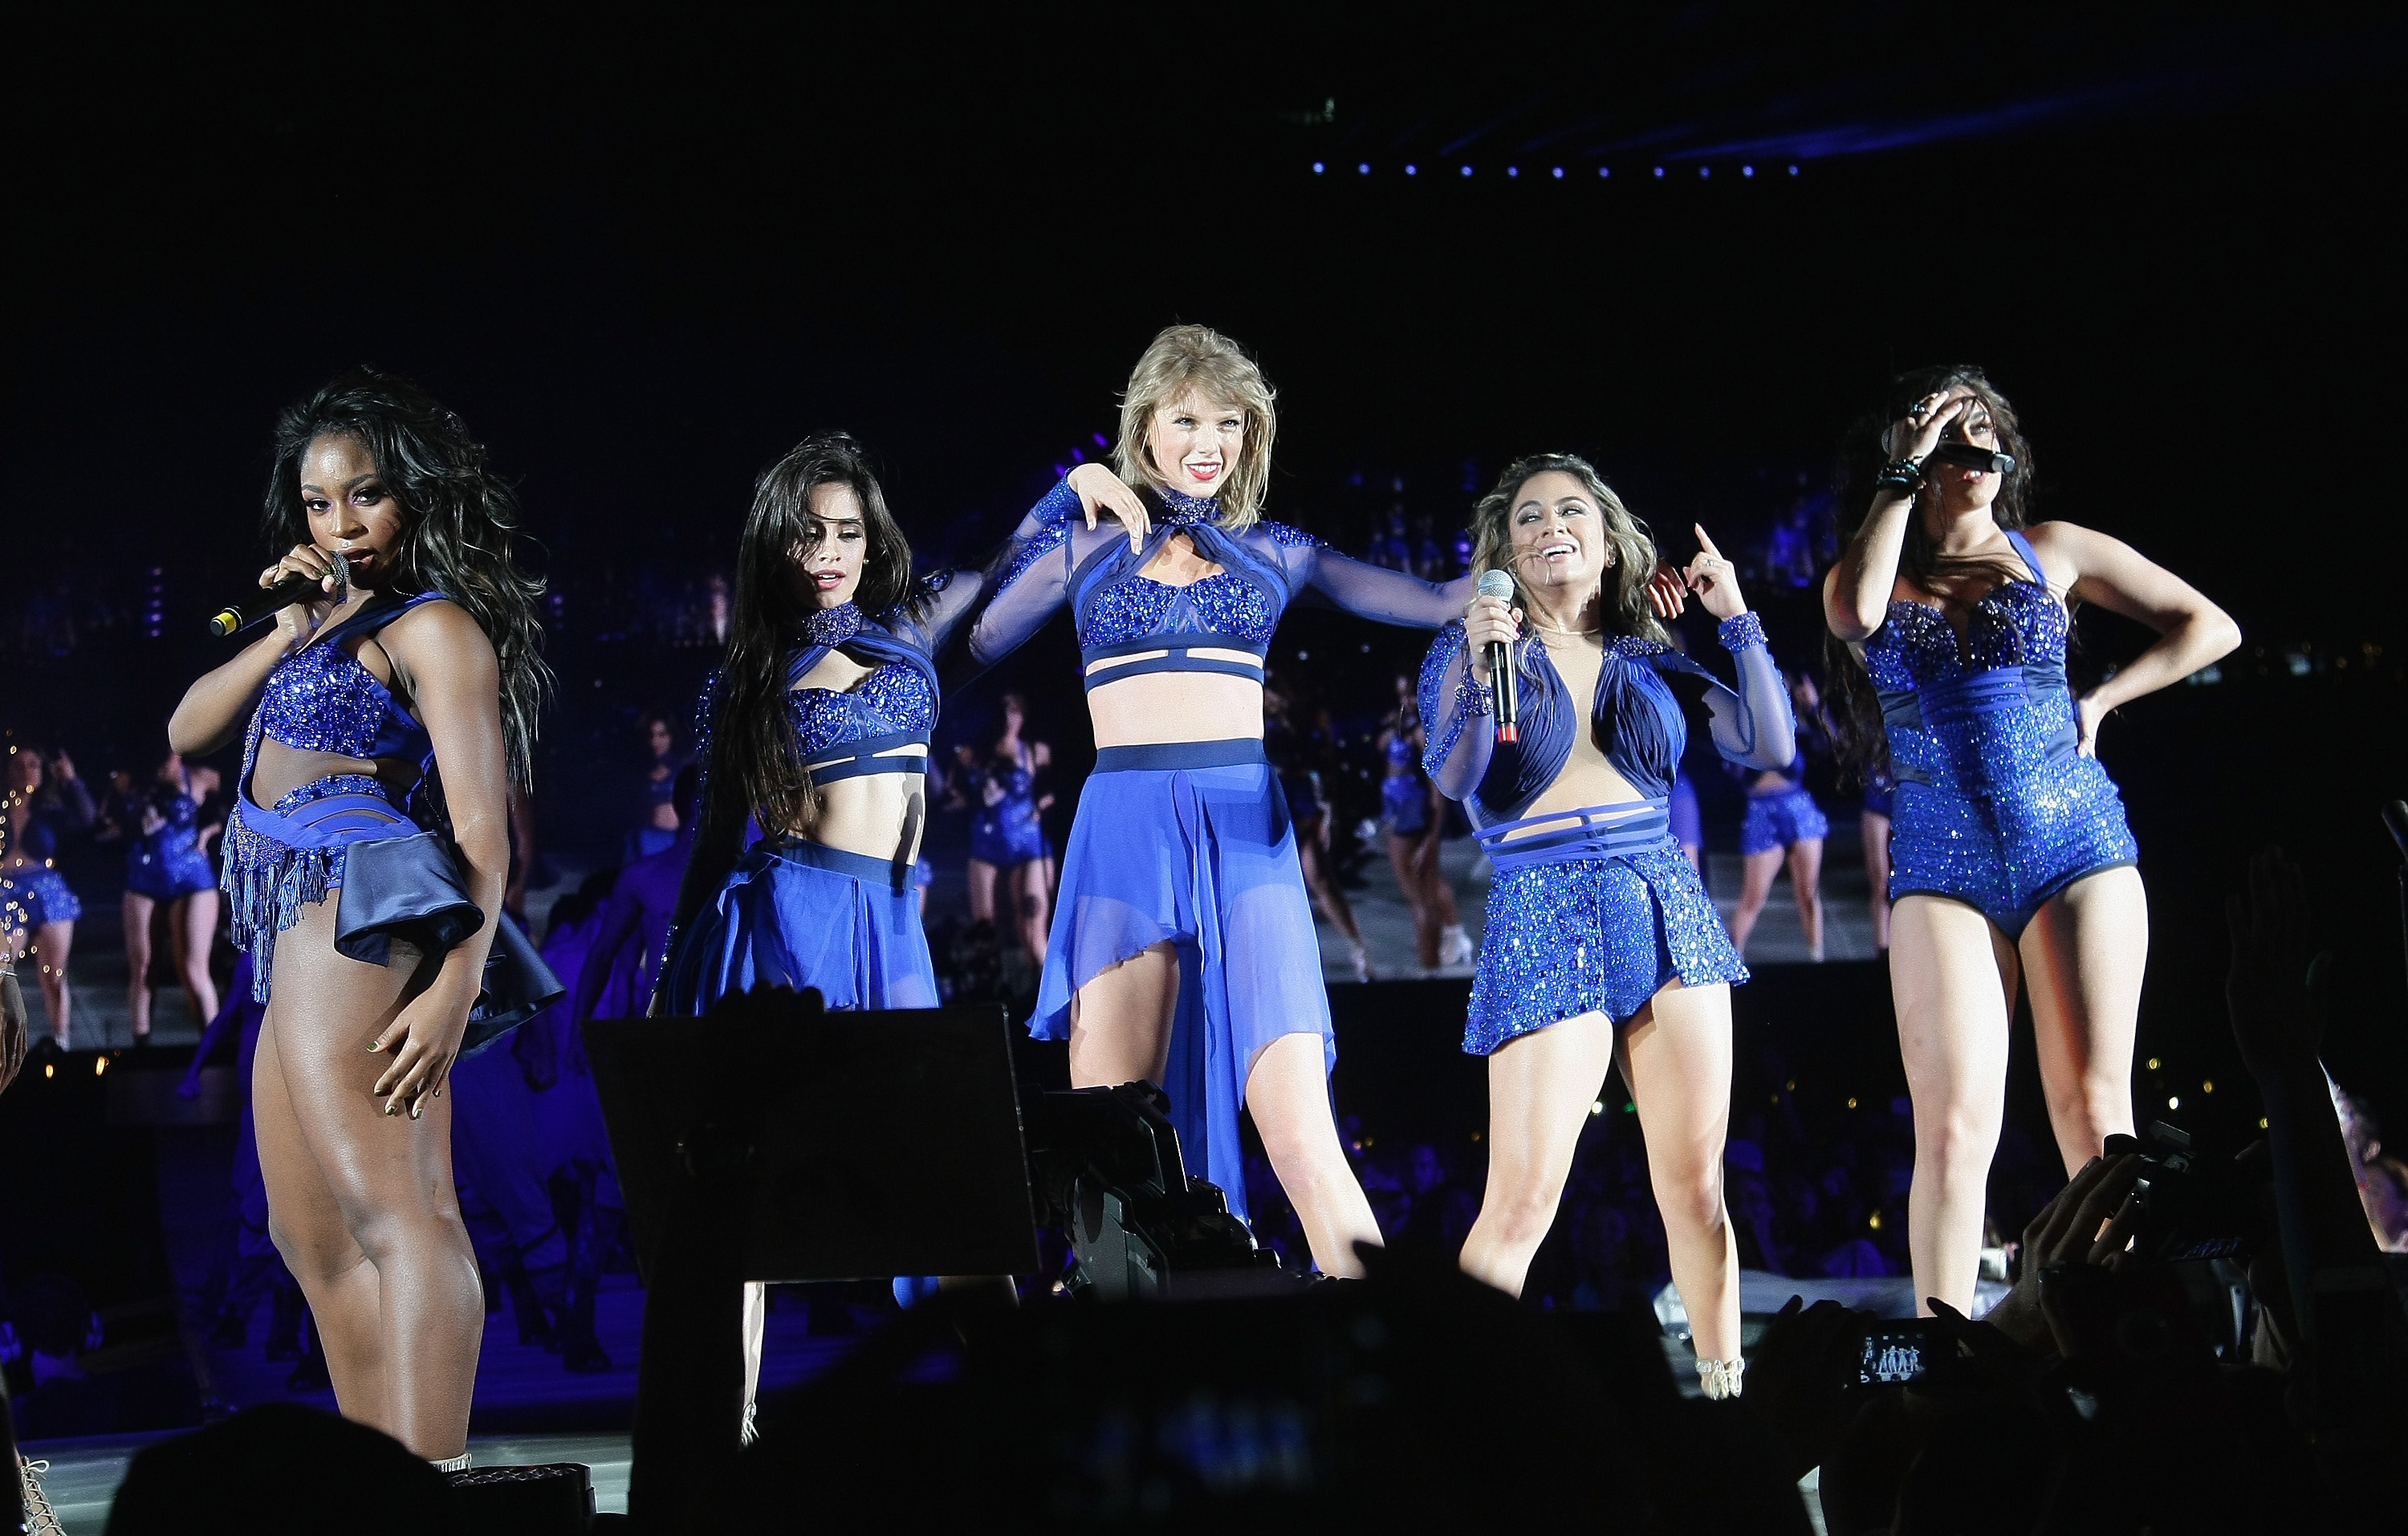 Taylor Swift and Fifth Harmony perform at Levi's Stadium in Santa Clara, Calif. on August 14, 2015.